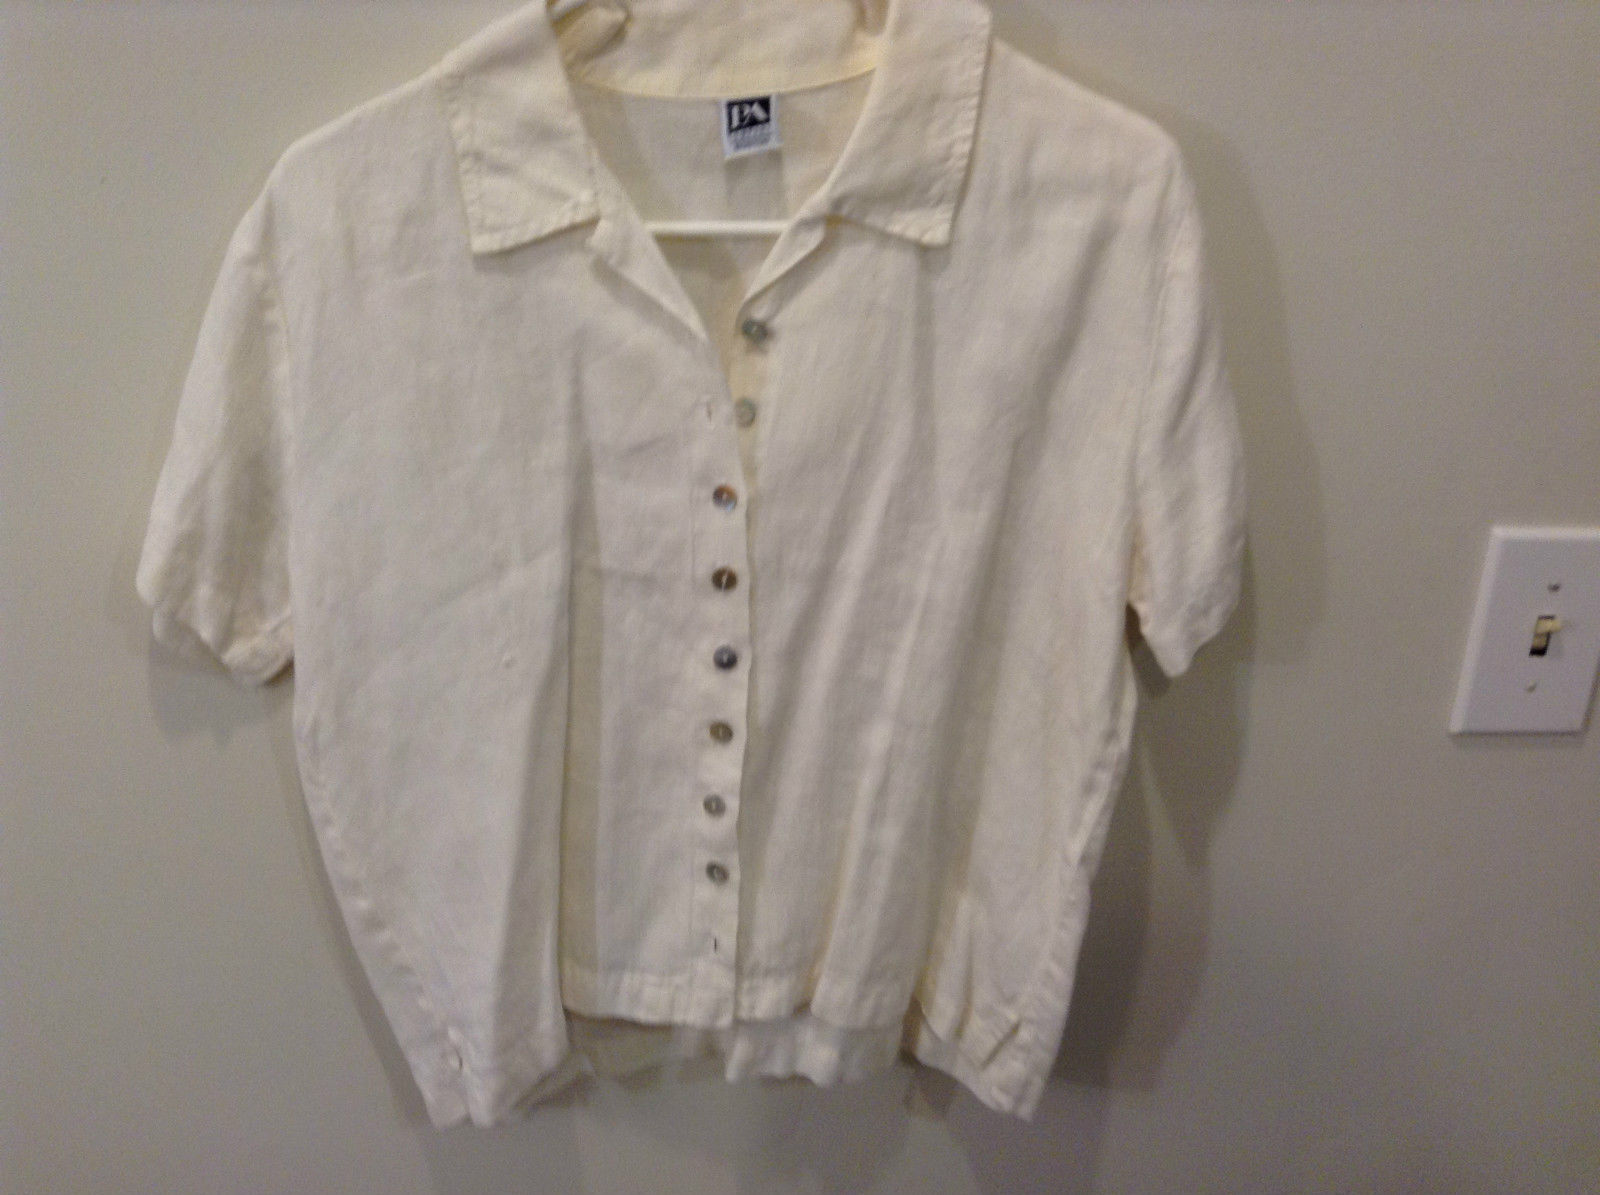 Ivory Linen Short Sleeve Button Front Blouse No Size Tag See Measurements Below